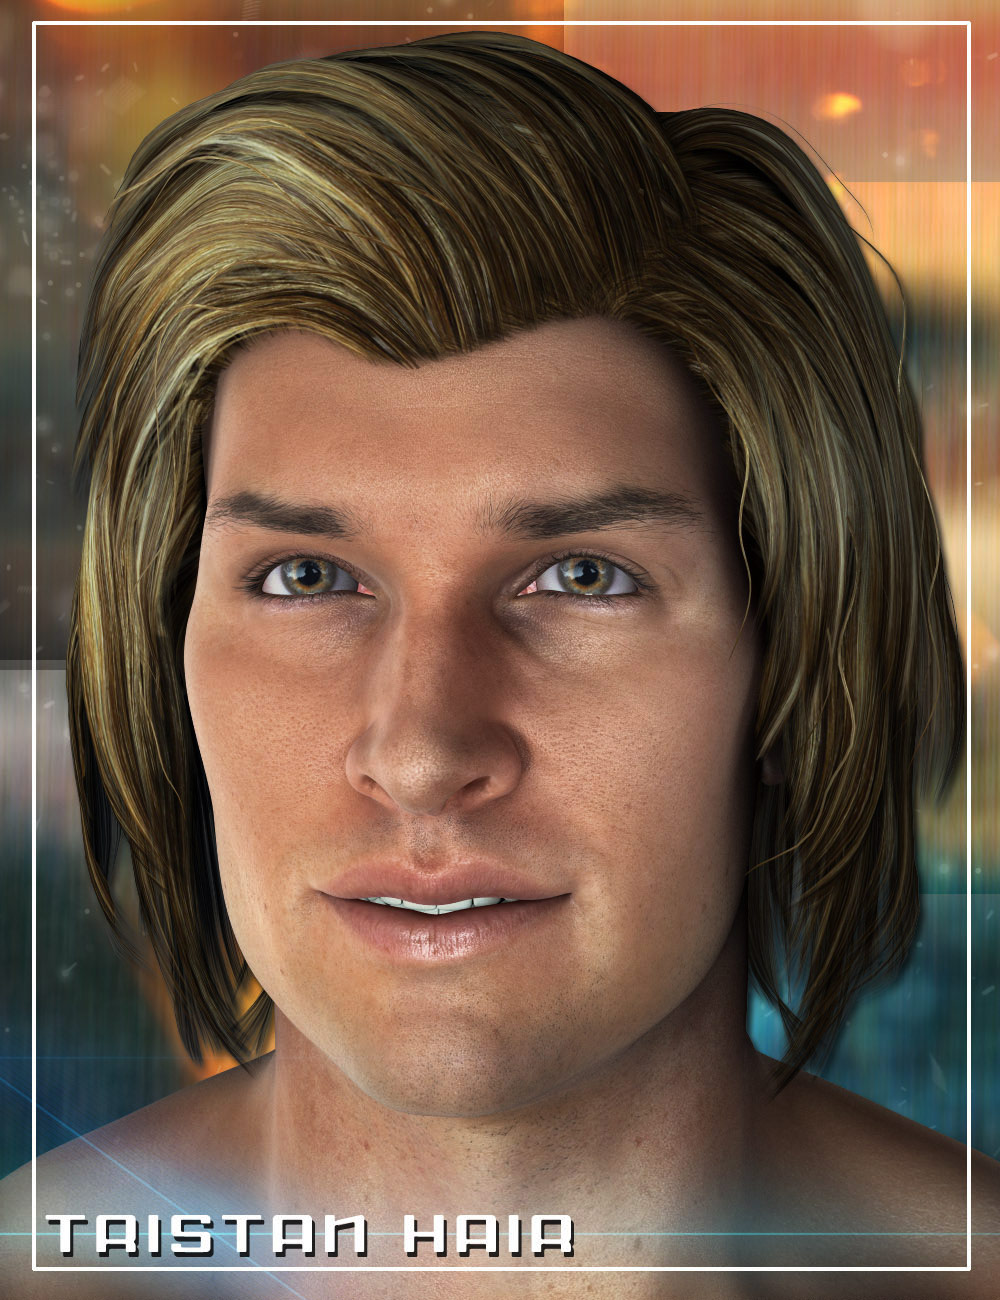 Tristan Hair for Gianni 6 and Genesis 2 Male(s) by: 3DCelebrity, 3D Models by Daz 3D